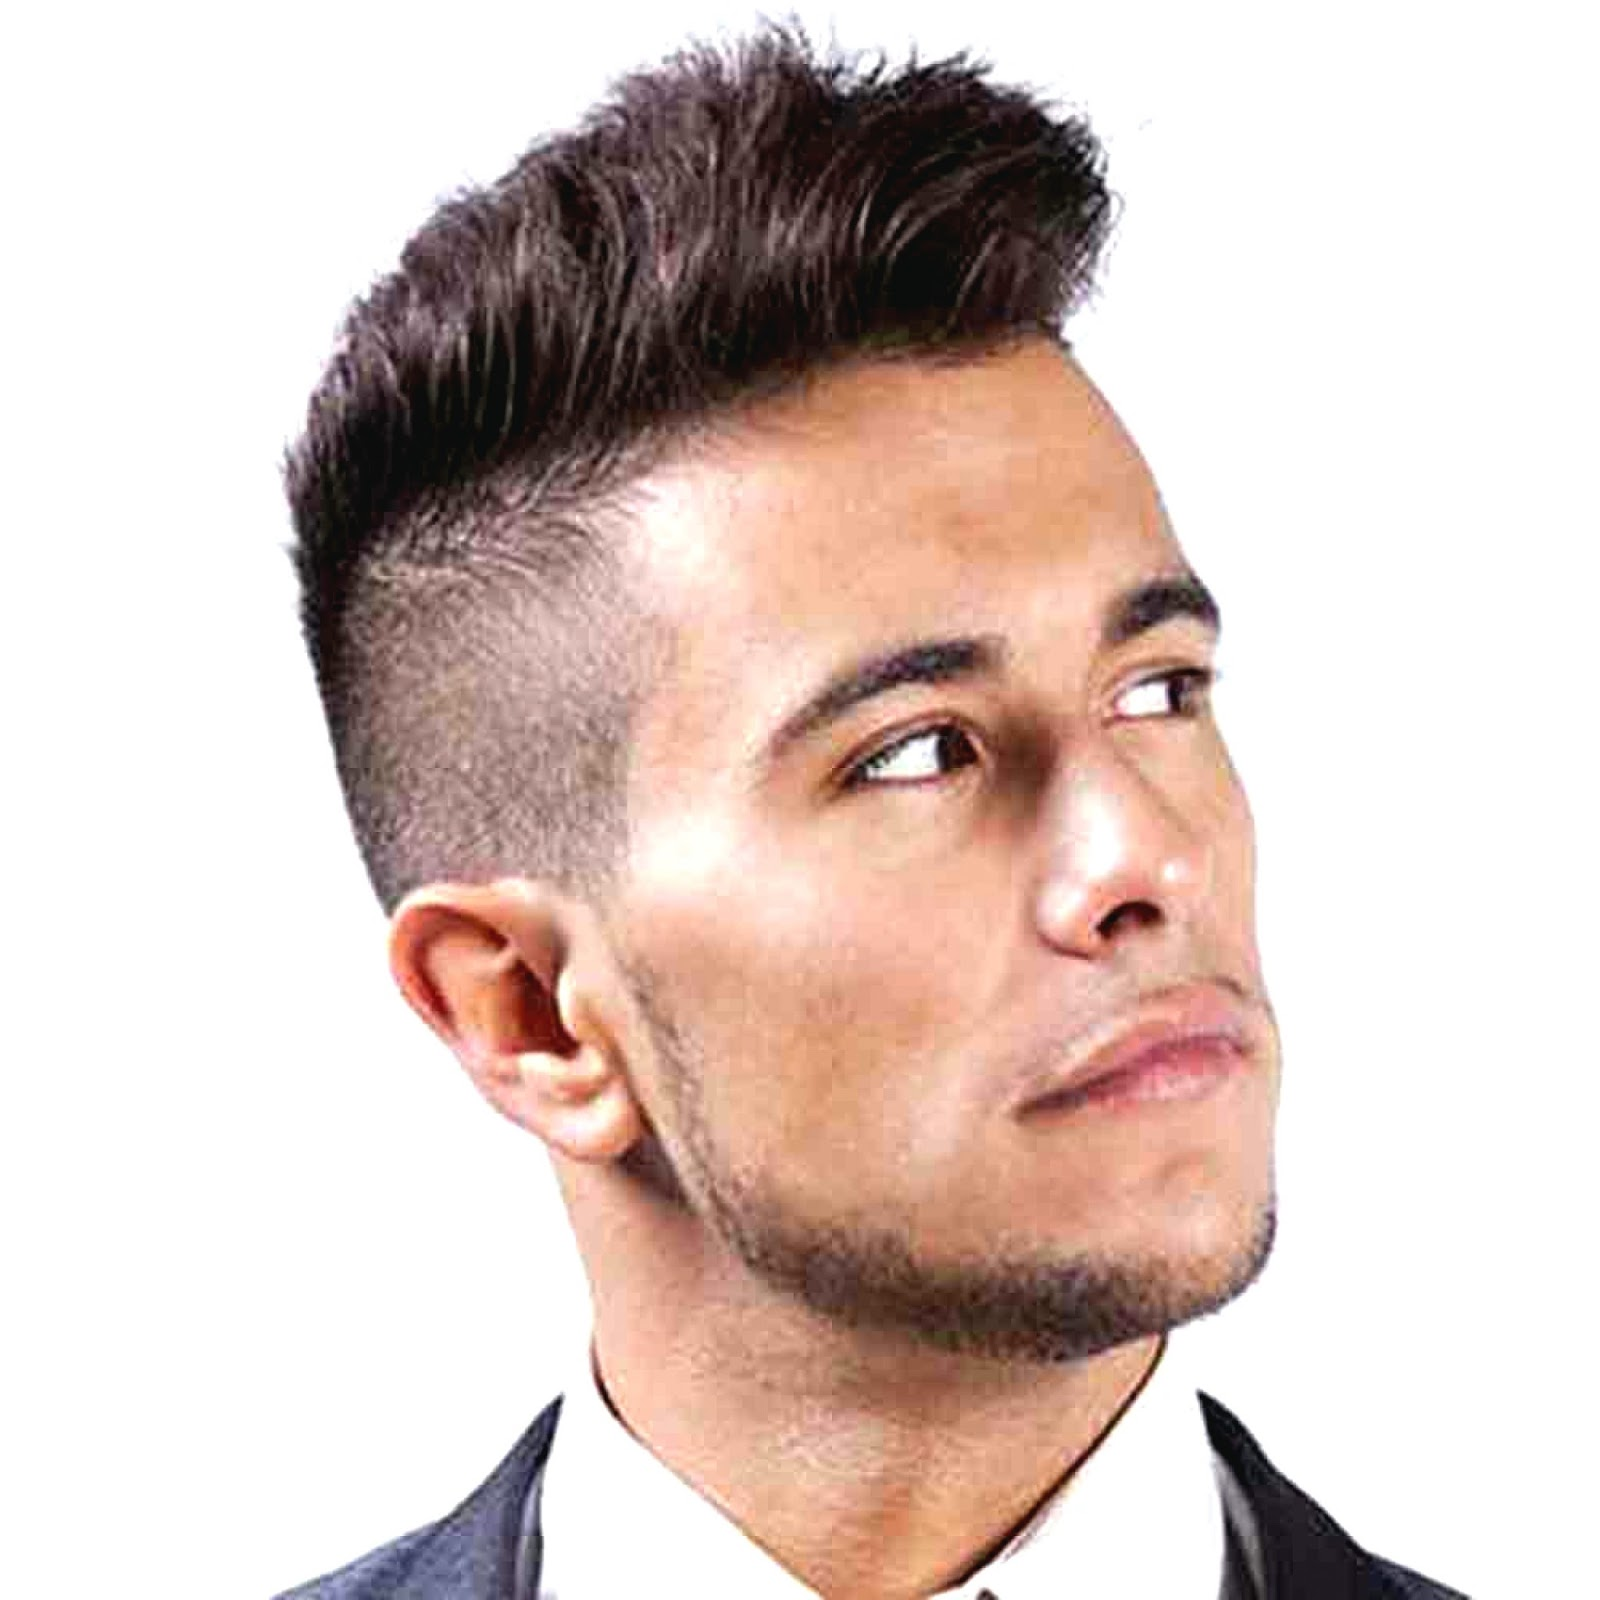 Luxury Modern Hairstyles for Guys – Hairstyle Ideas